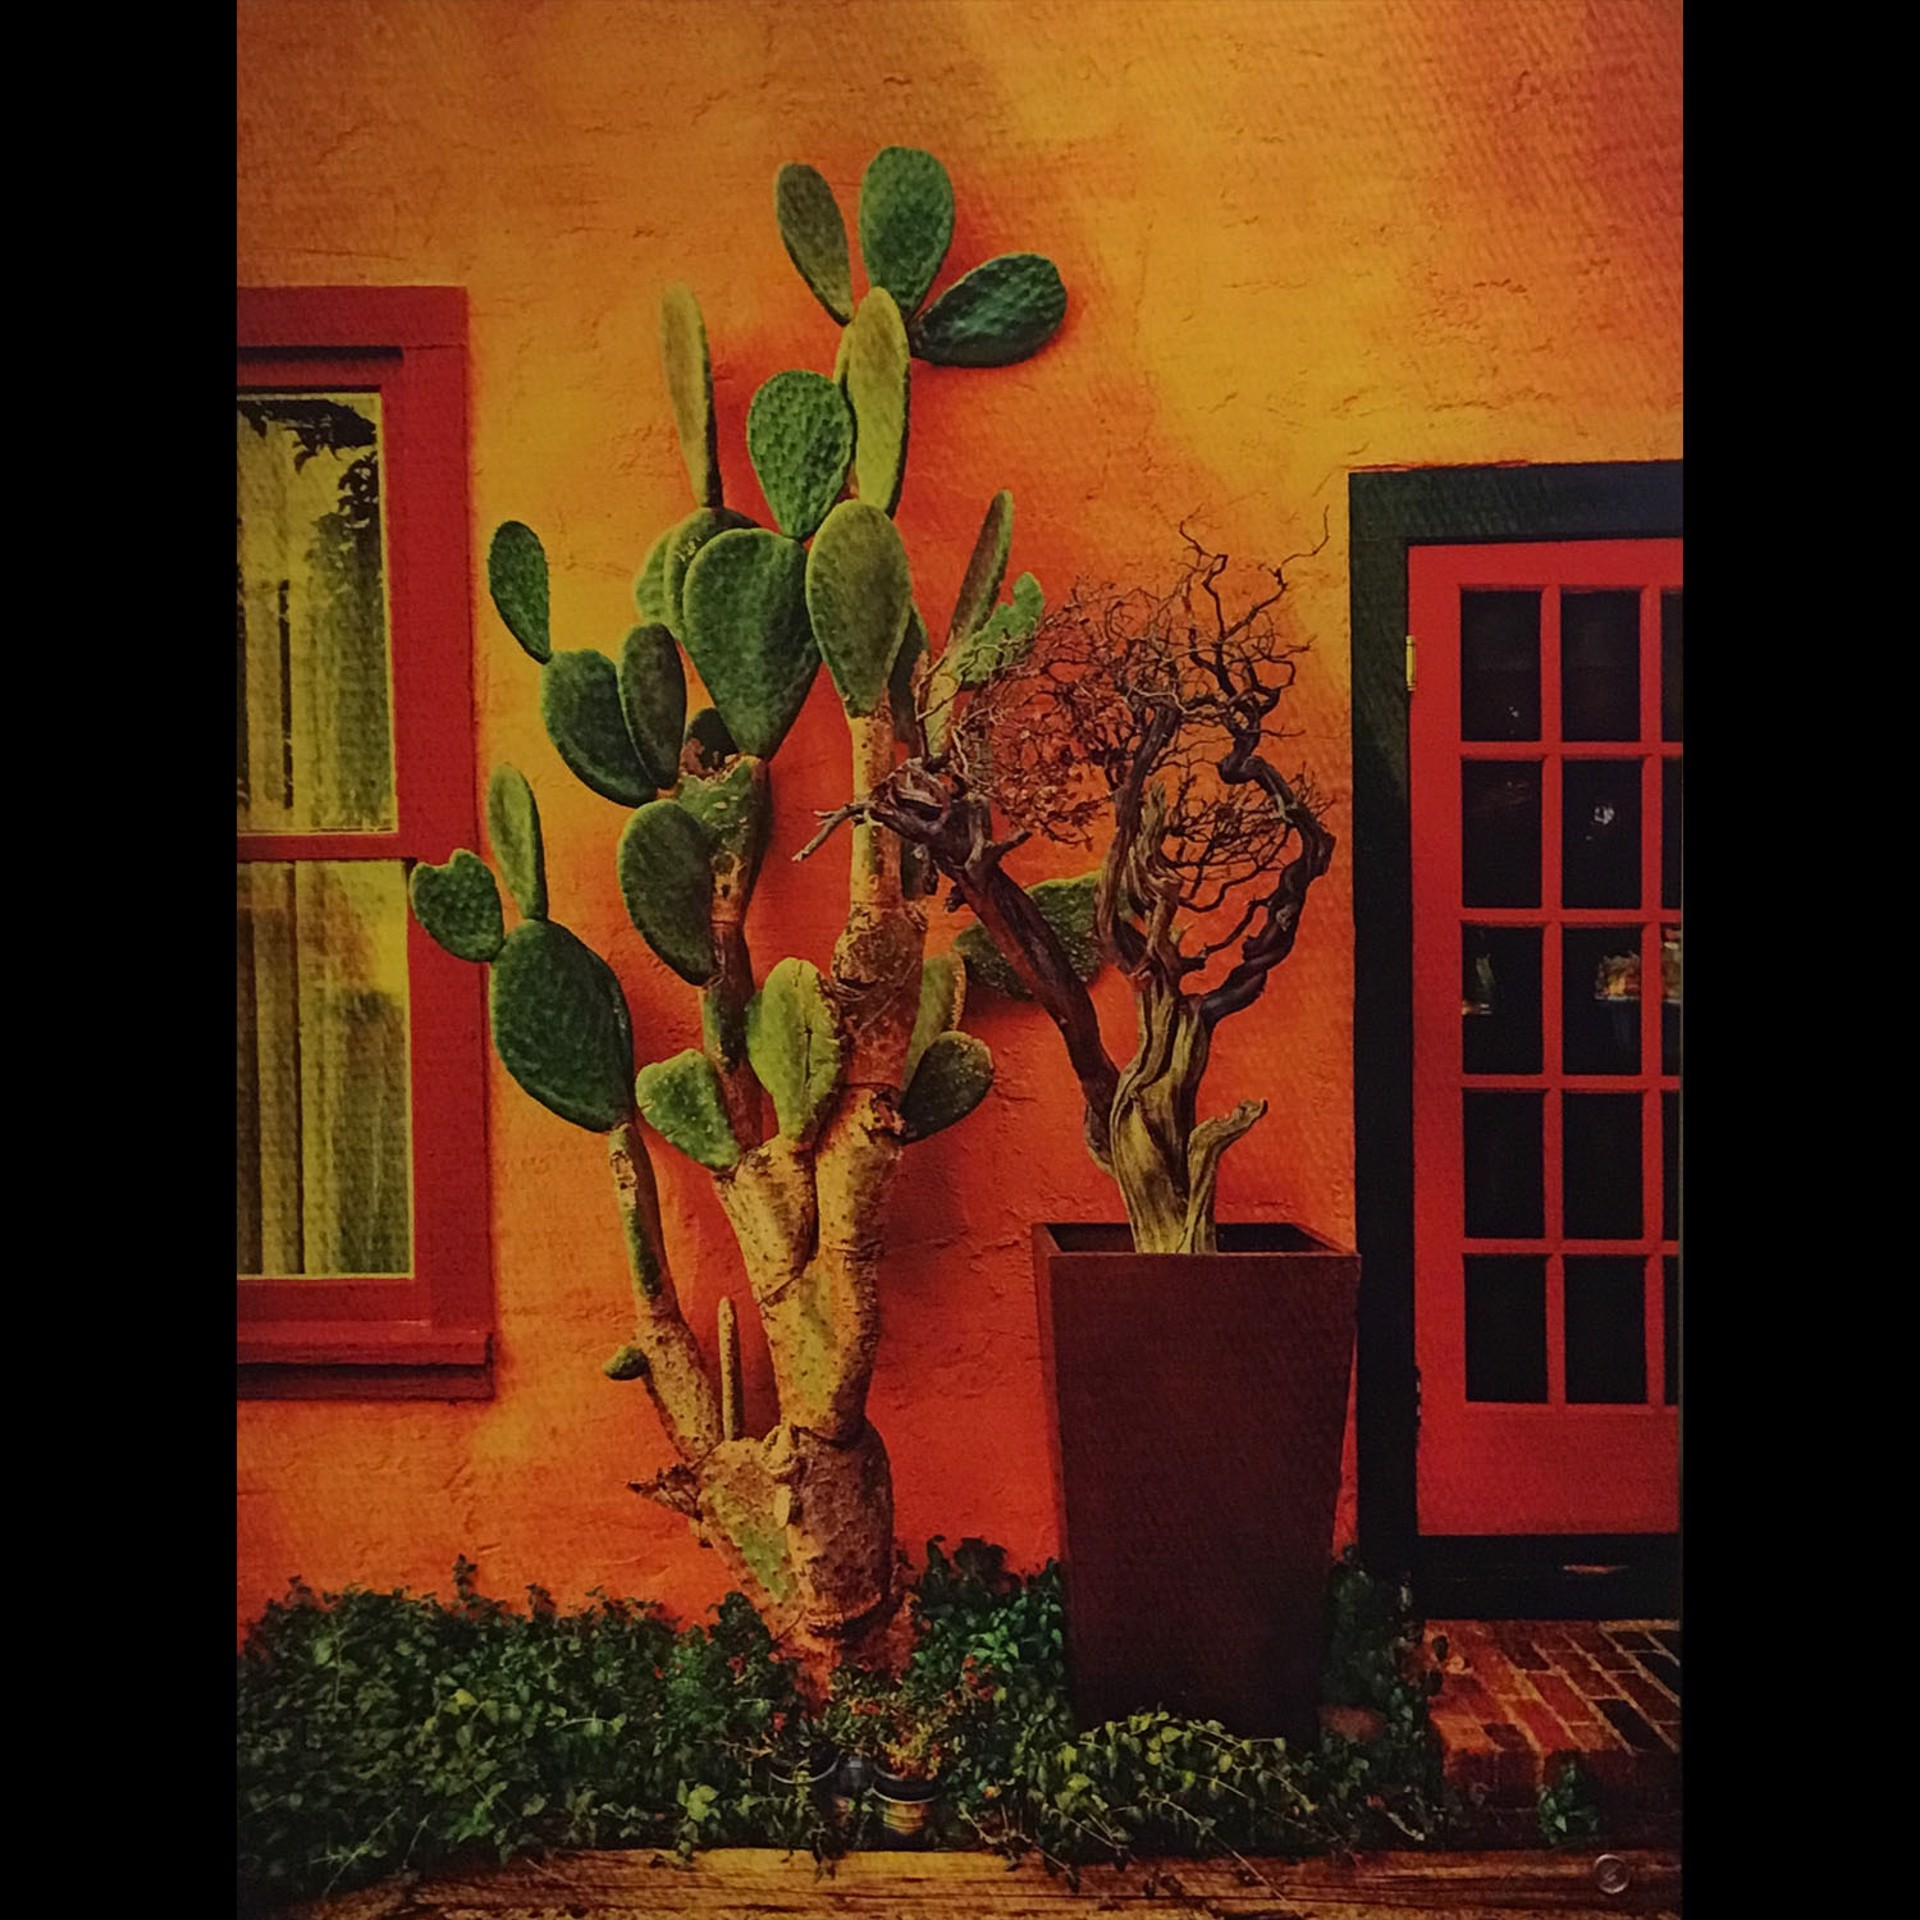 Cactus Door by Bob Coates